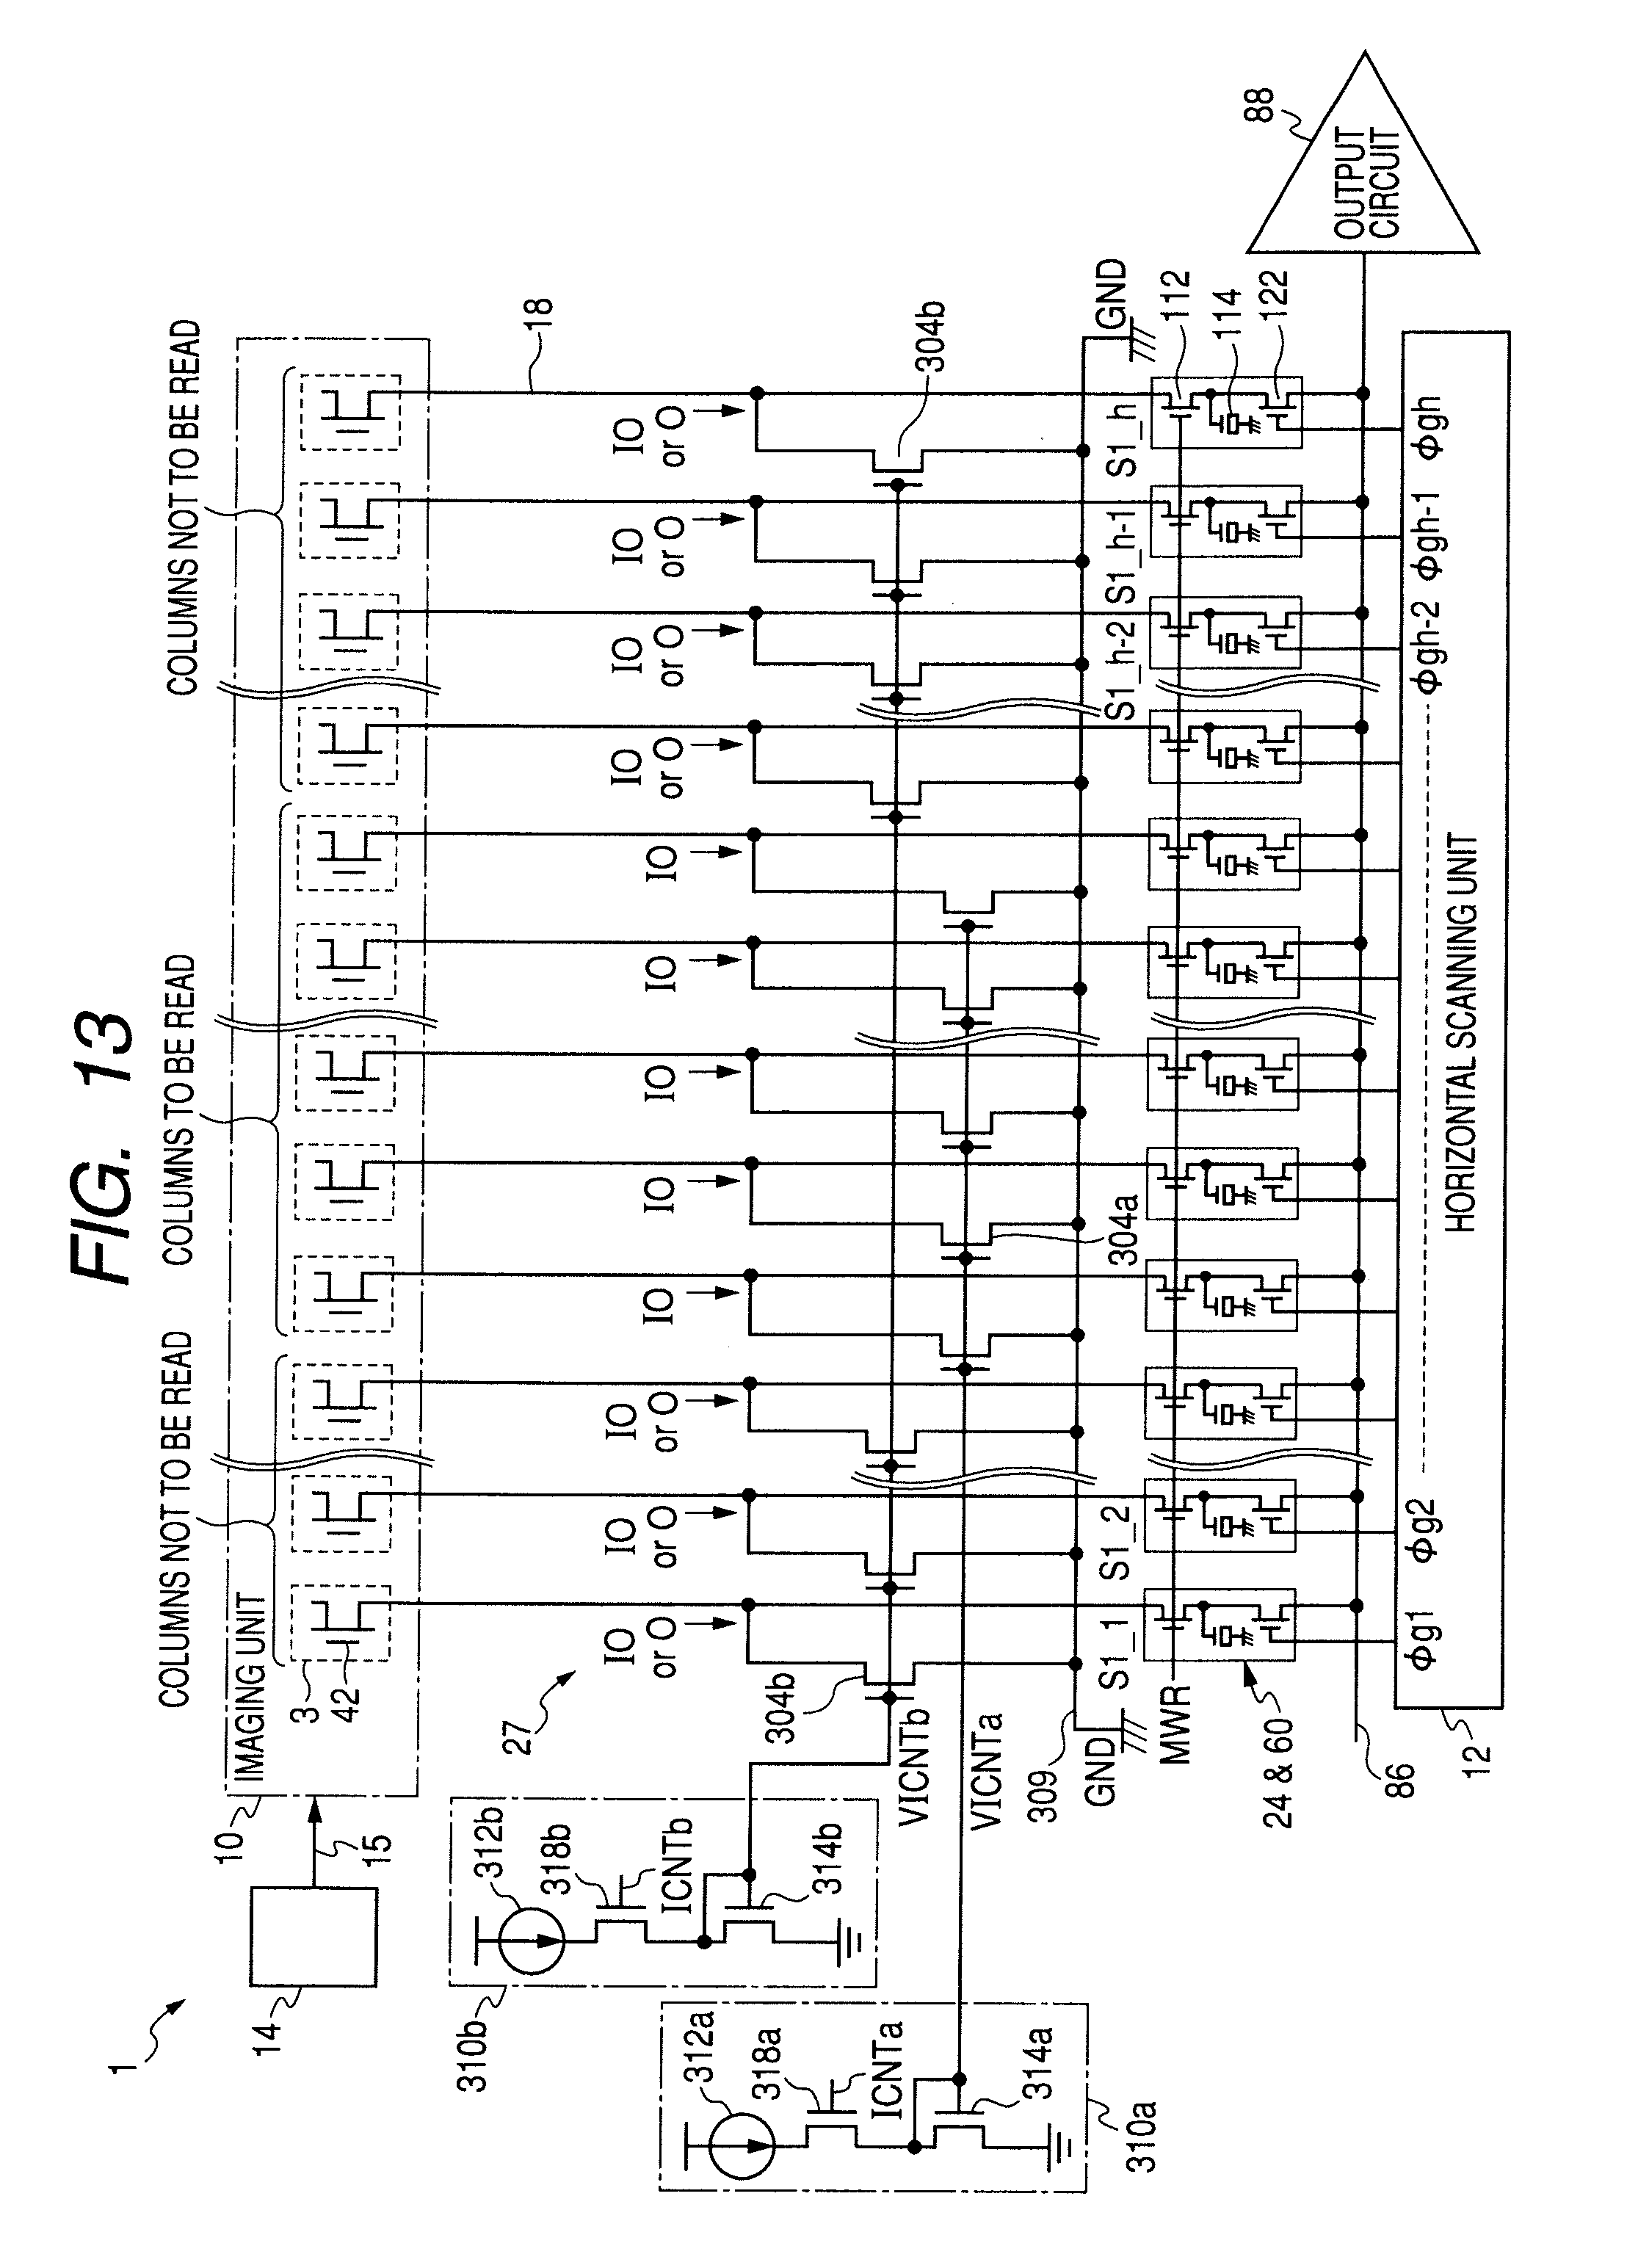 304b wiring diagram electrical diagrams, series and parallel SunSun 304B Canister Filter  Internet of Things Diagrams GMC Fuse Box Diagrams Wiring a Potentiometer for Motor